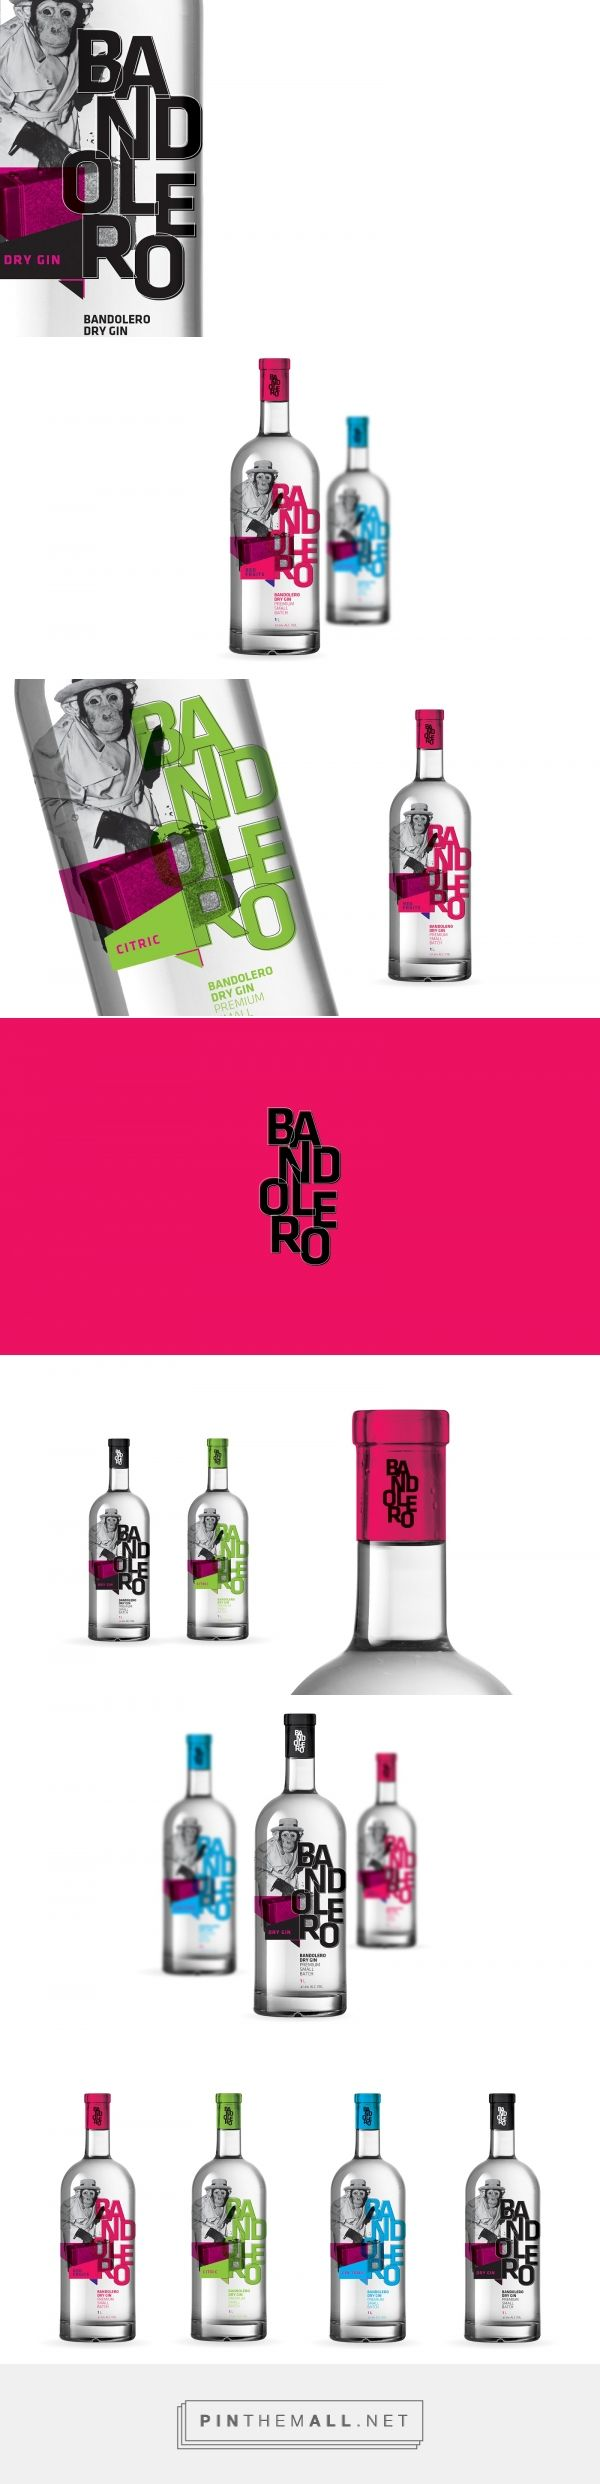 Bandolero Dry Gin (Concept) - Packaging of the World - Creative Package Design Gallery - http://www.packagingoftheworld.com/2017/09/bandolero-dry-gin-concept.html